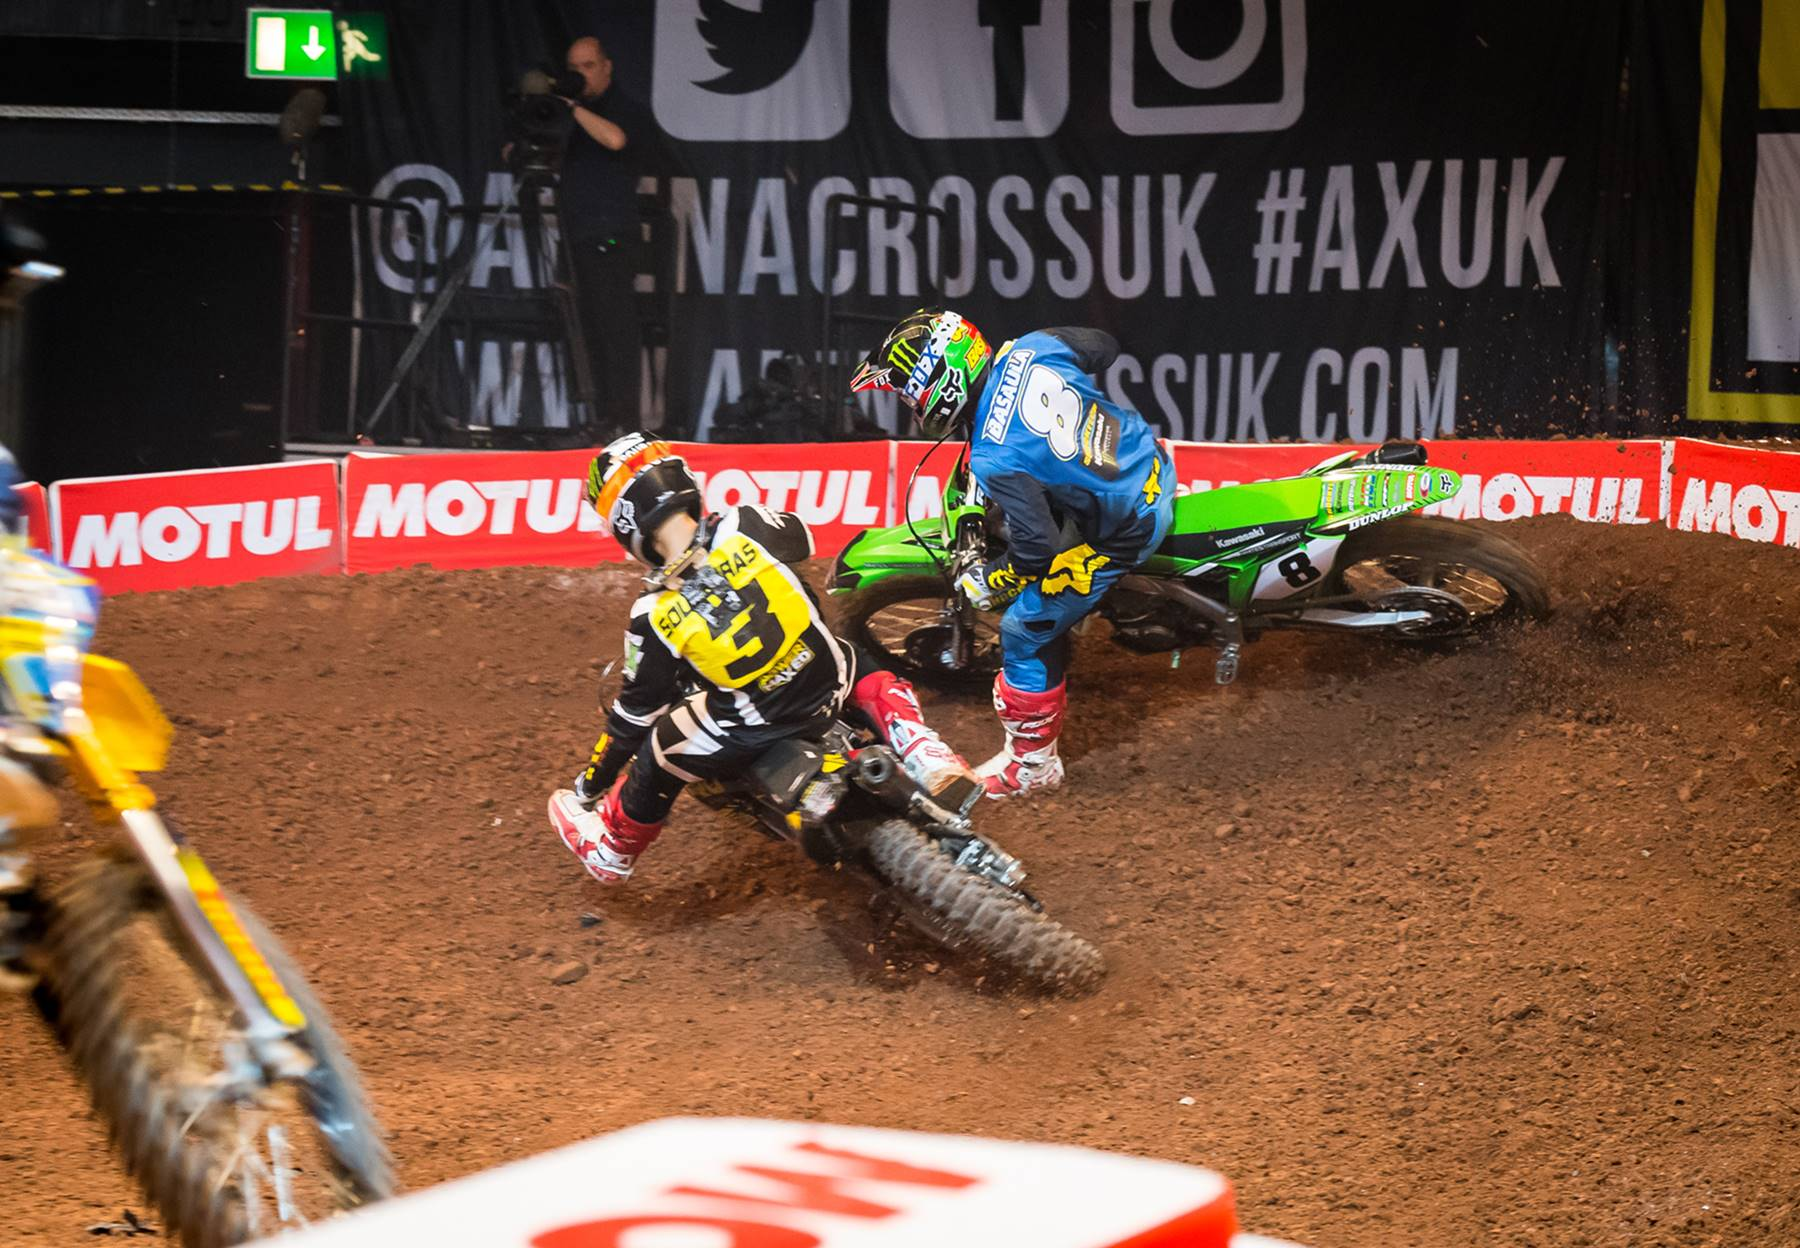 MOTUL PROGRESSES WITH ARENACROSS